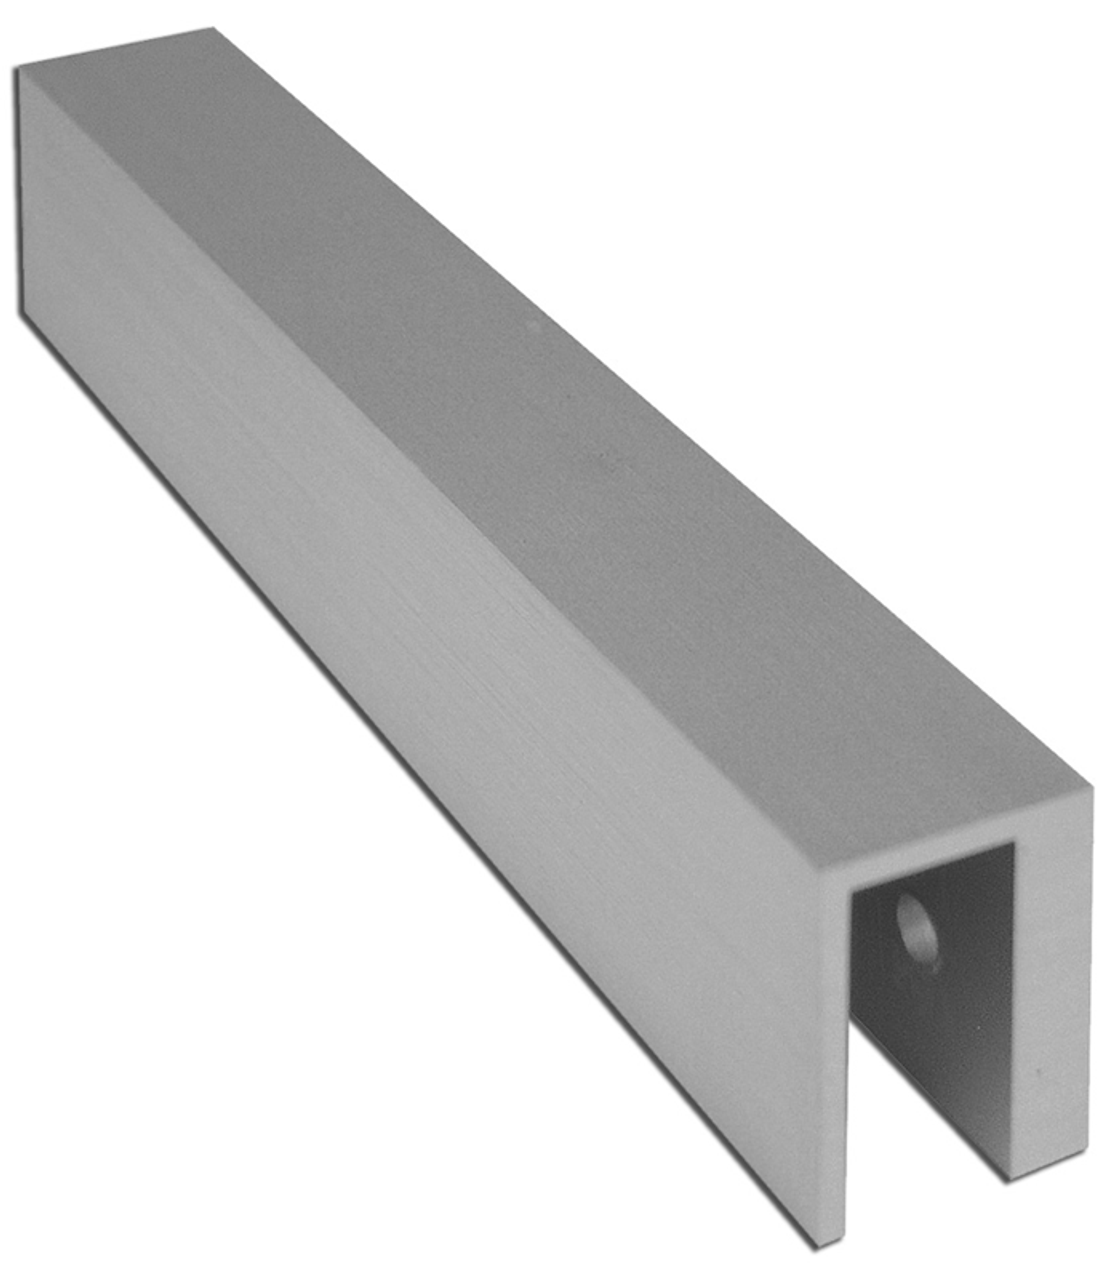 Securitron Gdb Vm600 Glass Door Brackets For Vista Vm600